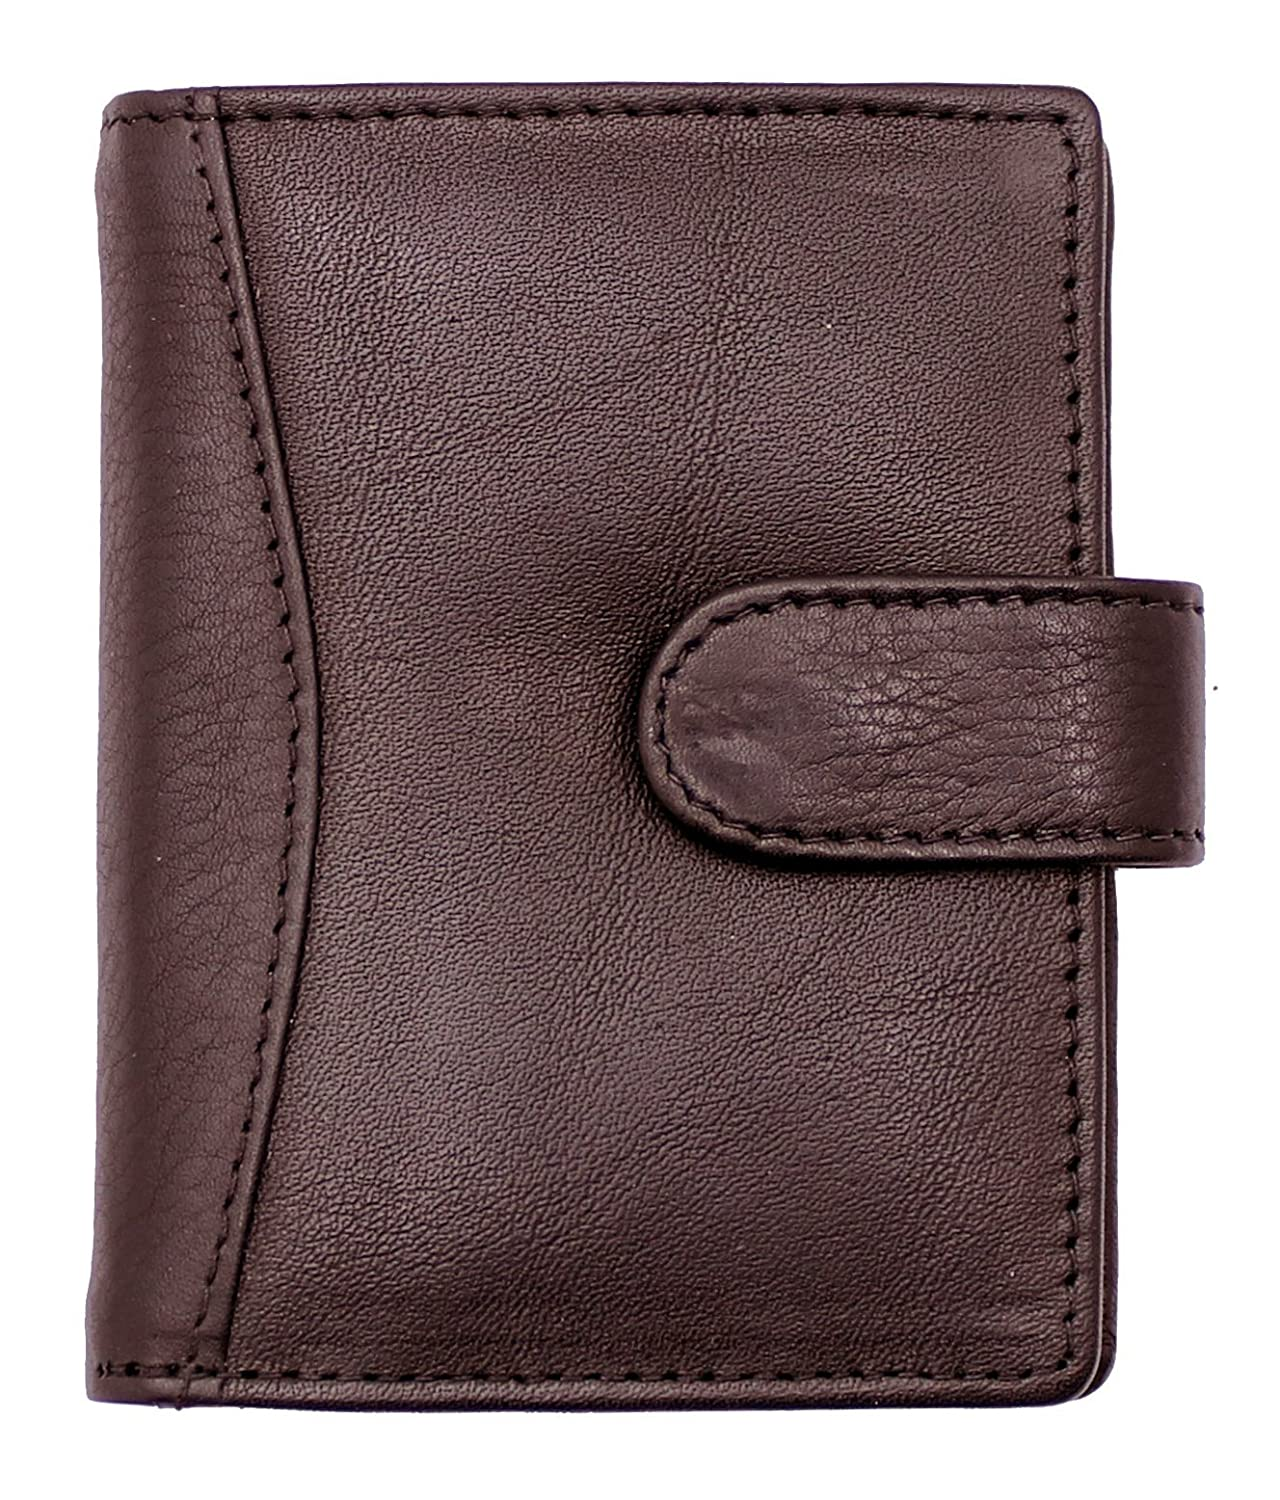 RAS WALLETS Men's Leather Credit Card Holder Wallet-20 Clear Plastic Pockets Brown